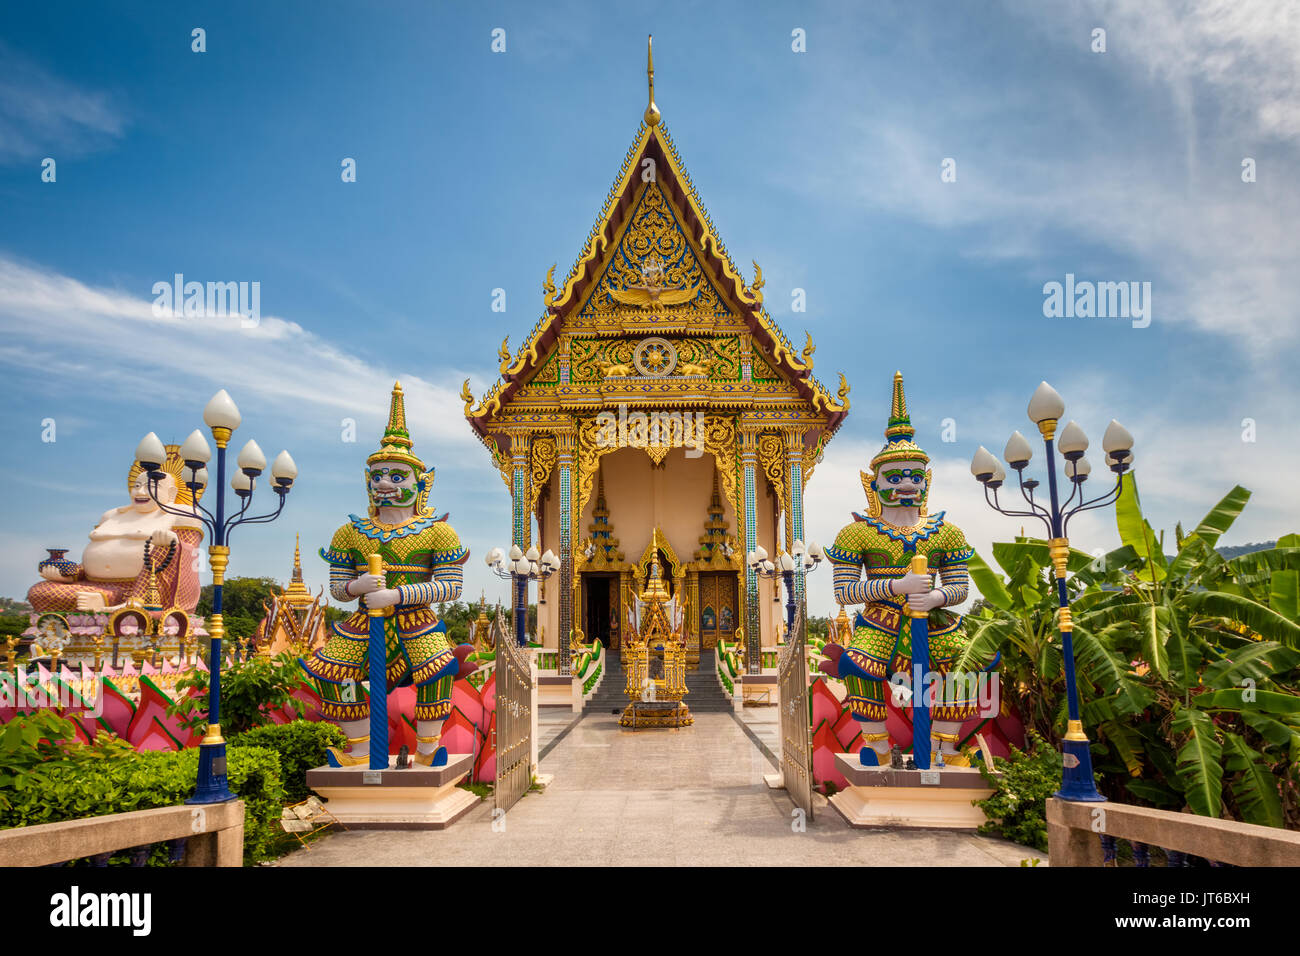 Giant guardians at entrance of the Buddhist Pagoda, Wat Plai Laem Temple, Suwannaram Ban Bo Phut, Koh Samui, Thailand - Stock Image